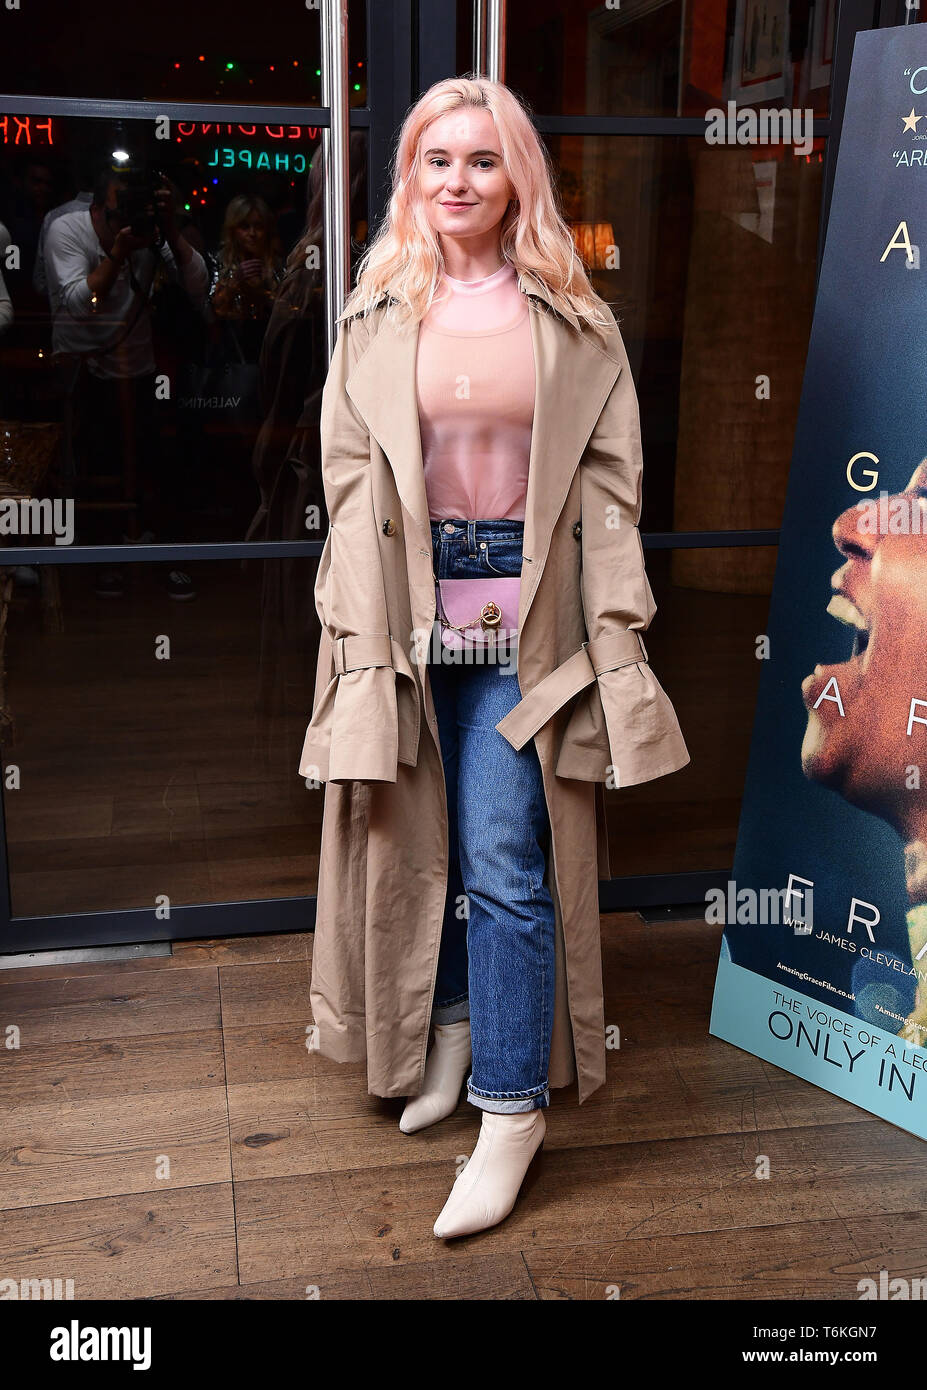 Grace Chatto asistieron a la proyección del documental, Aretha Franklin Amazing Grace, a jamón Yard Hotel, Londres. Foto de stock